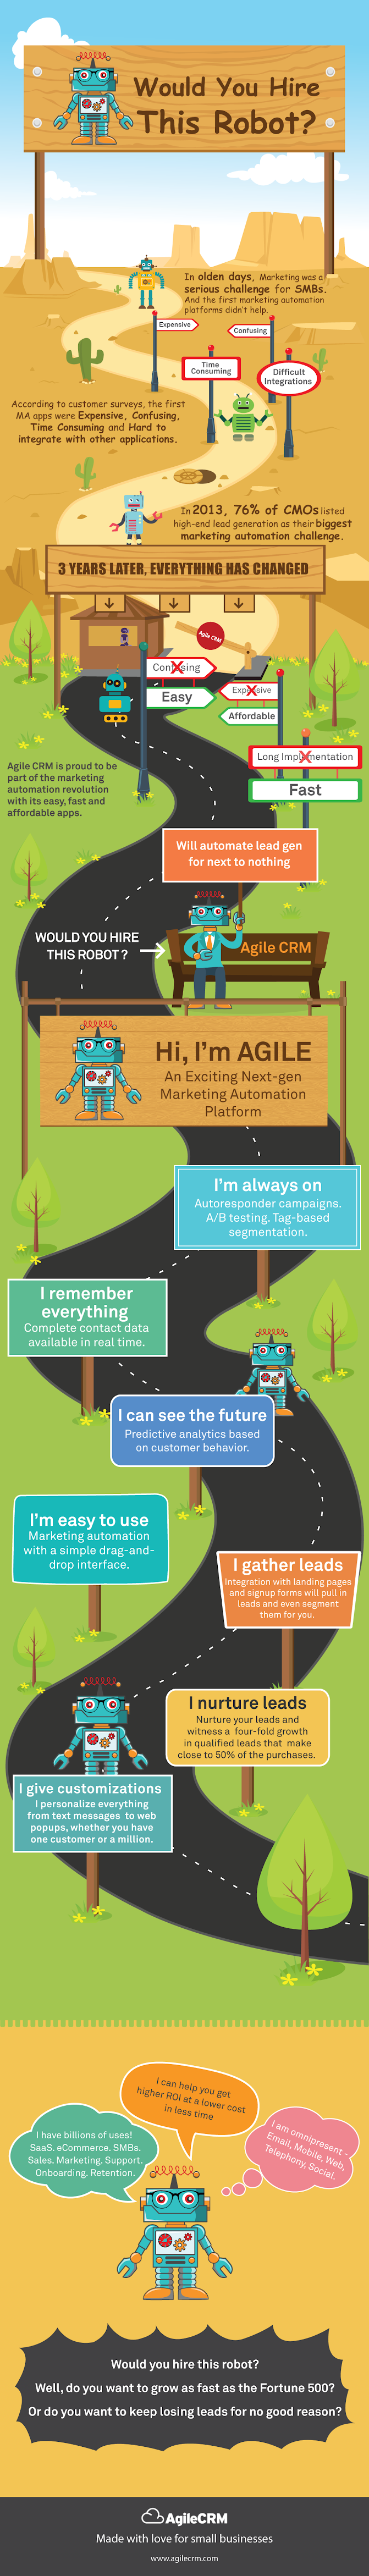 Would You Hire This Robot? #infographic